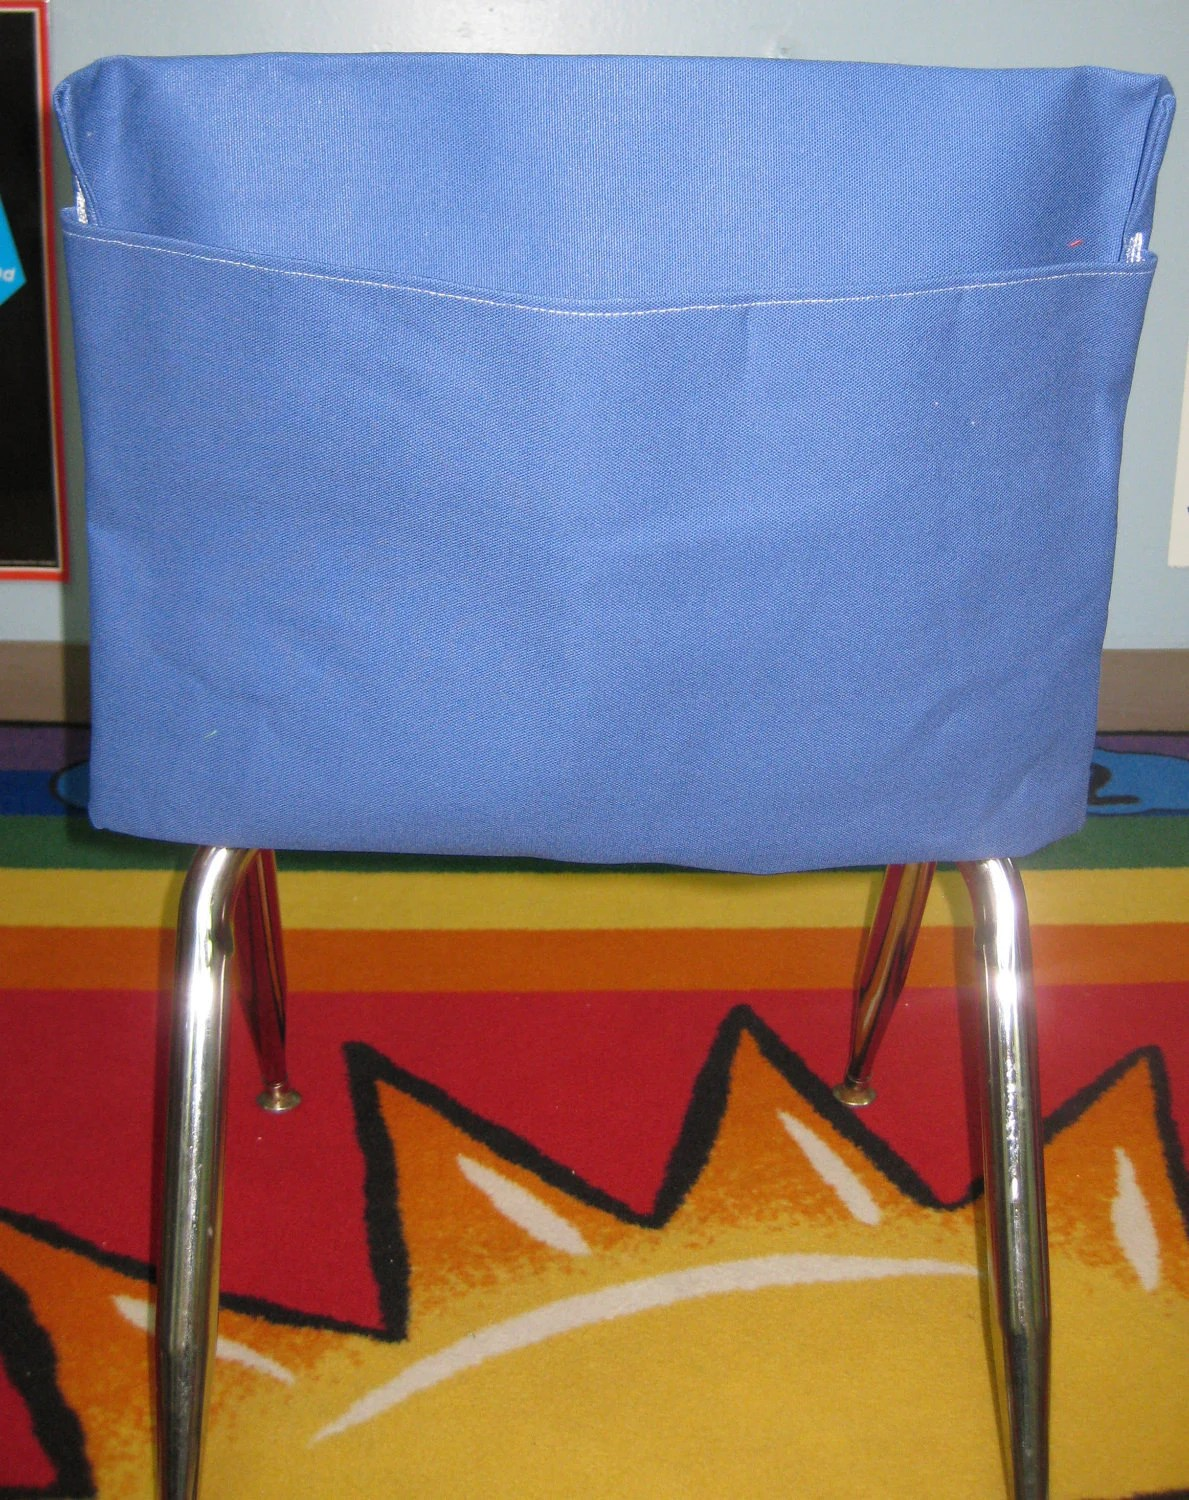 Chair Pockets For Classrooms 20 Medium Chair Pockets Seat Desk Sack Free By Chairpockets